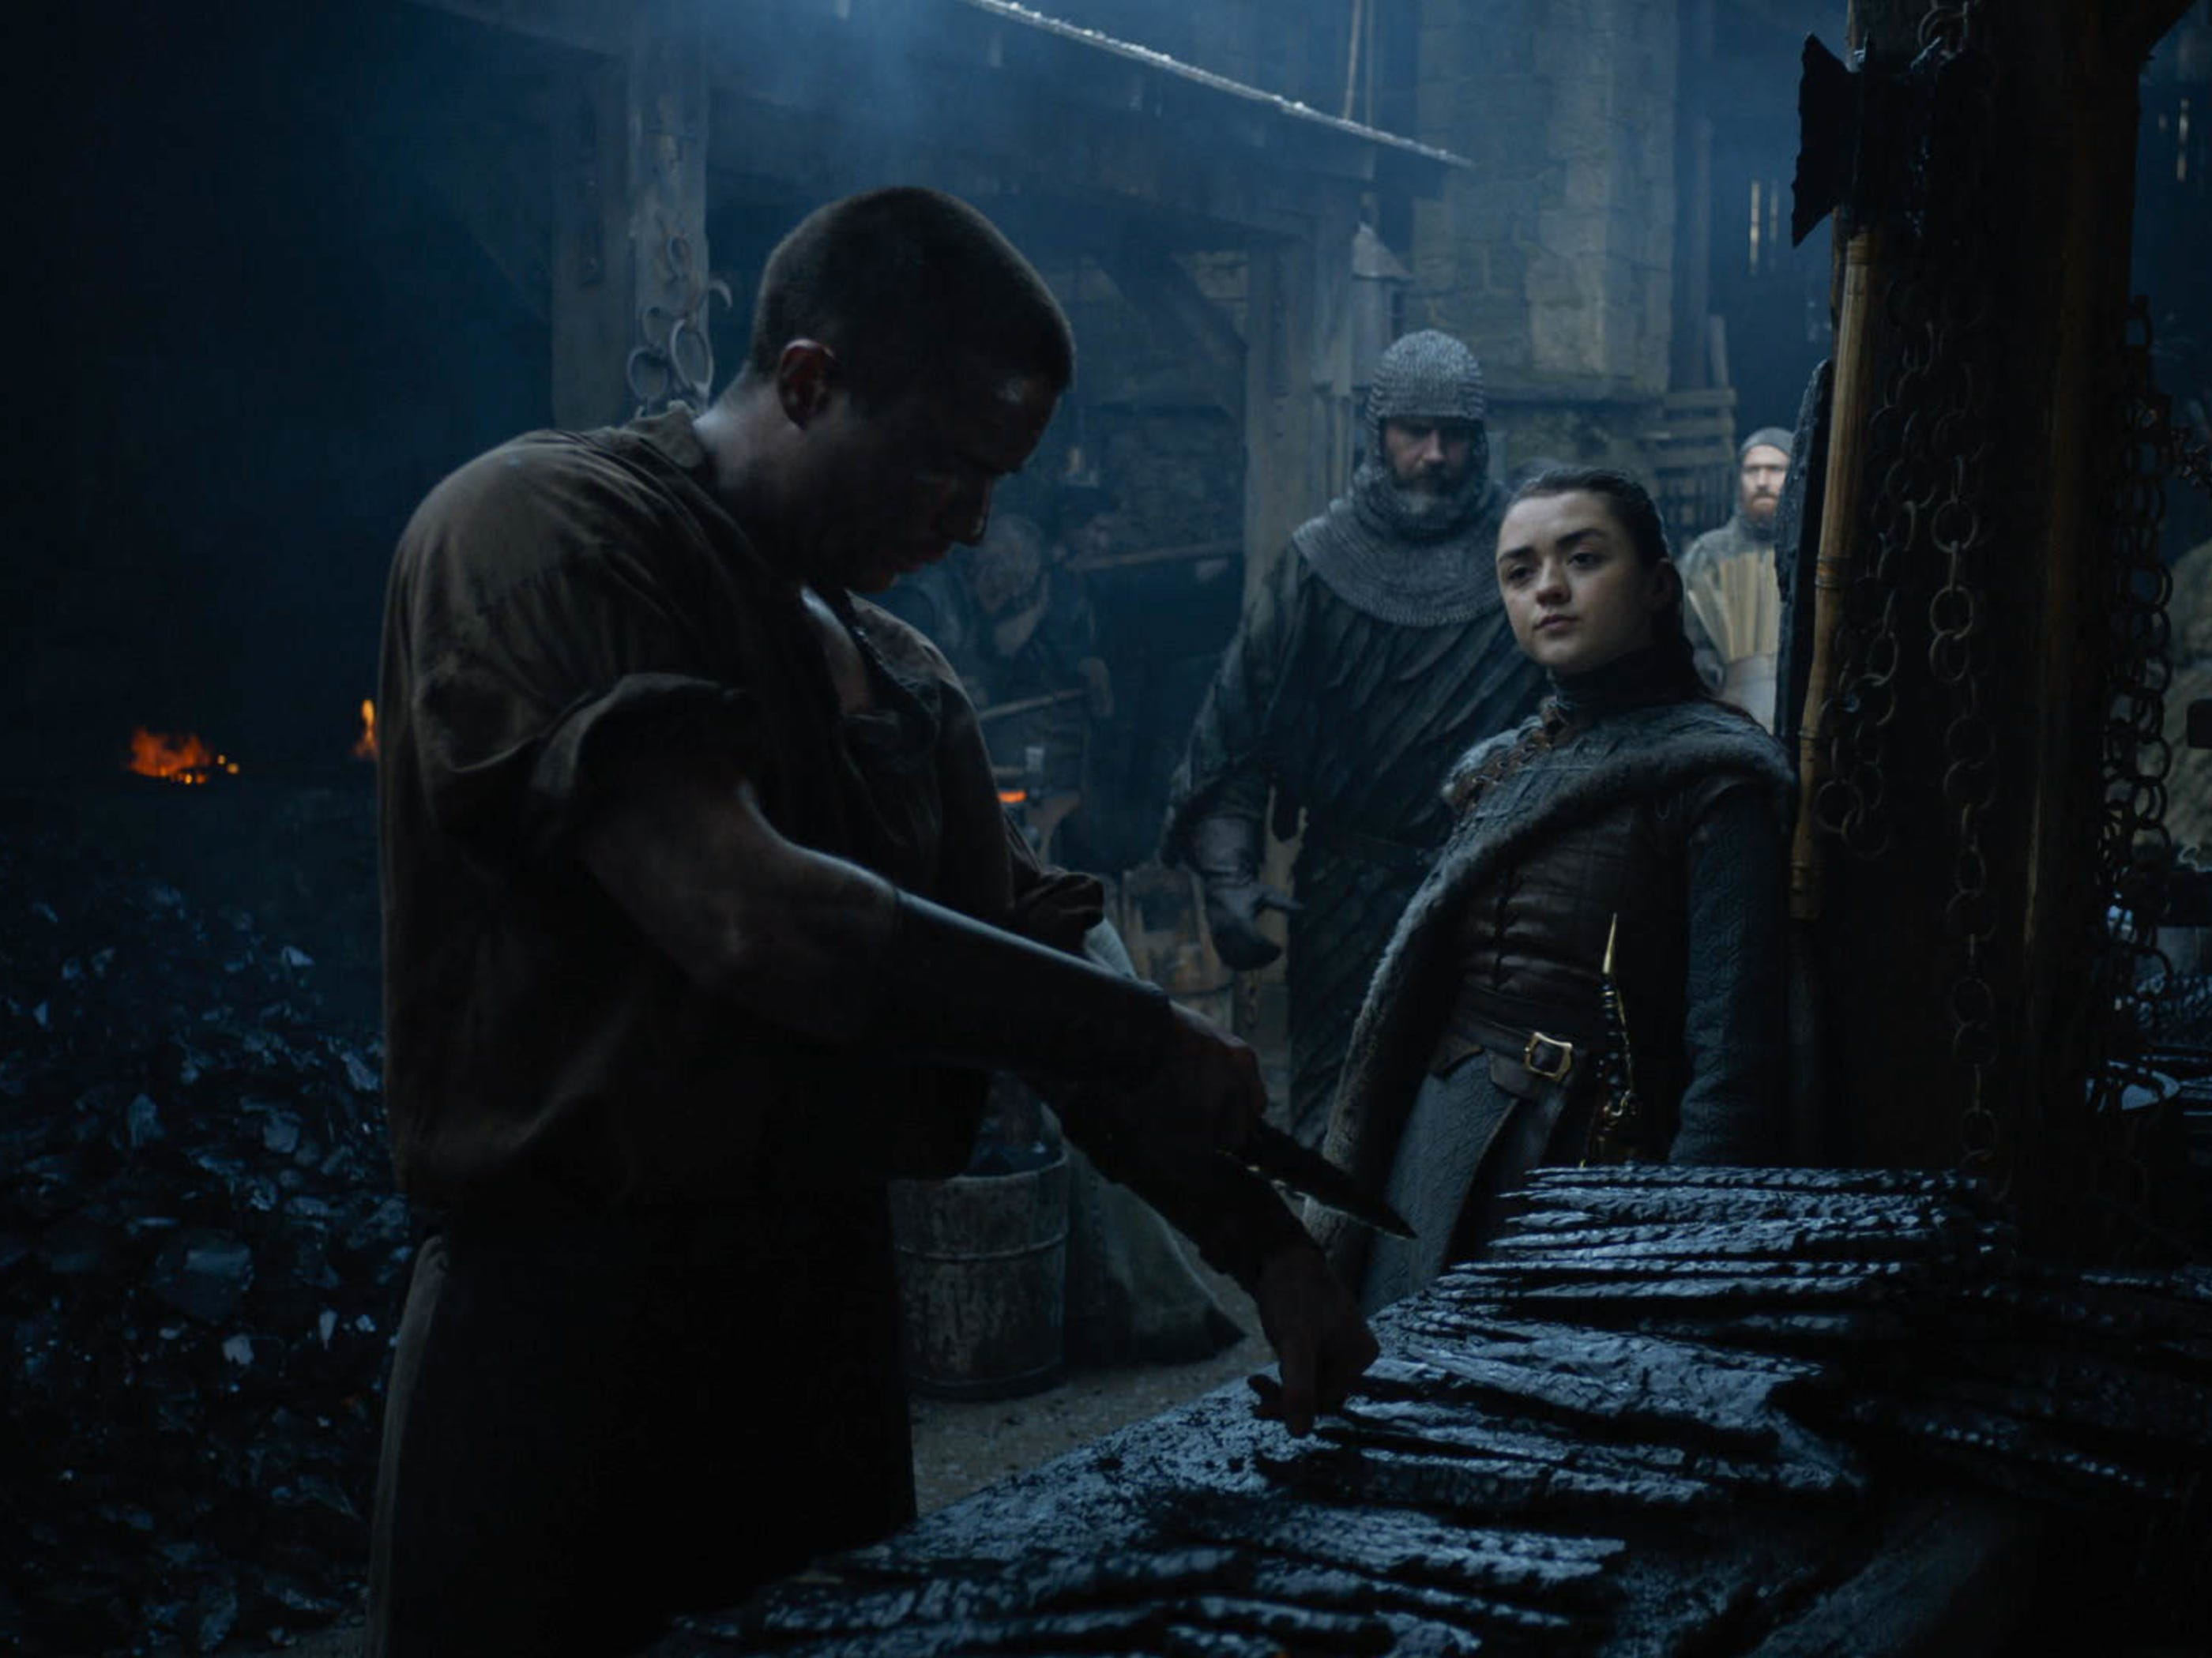 Joe Dempsie as Gendry, left and Maisie Williams as Arya Stark in 'Game of Thrones.'